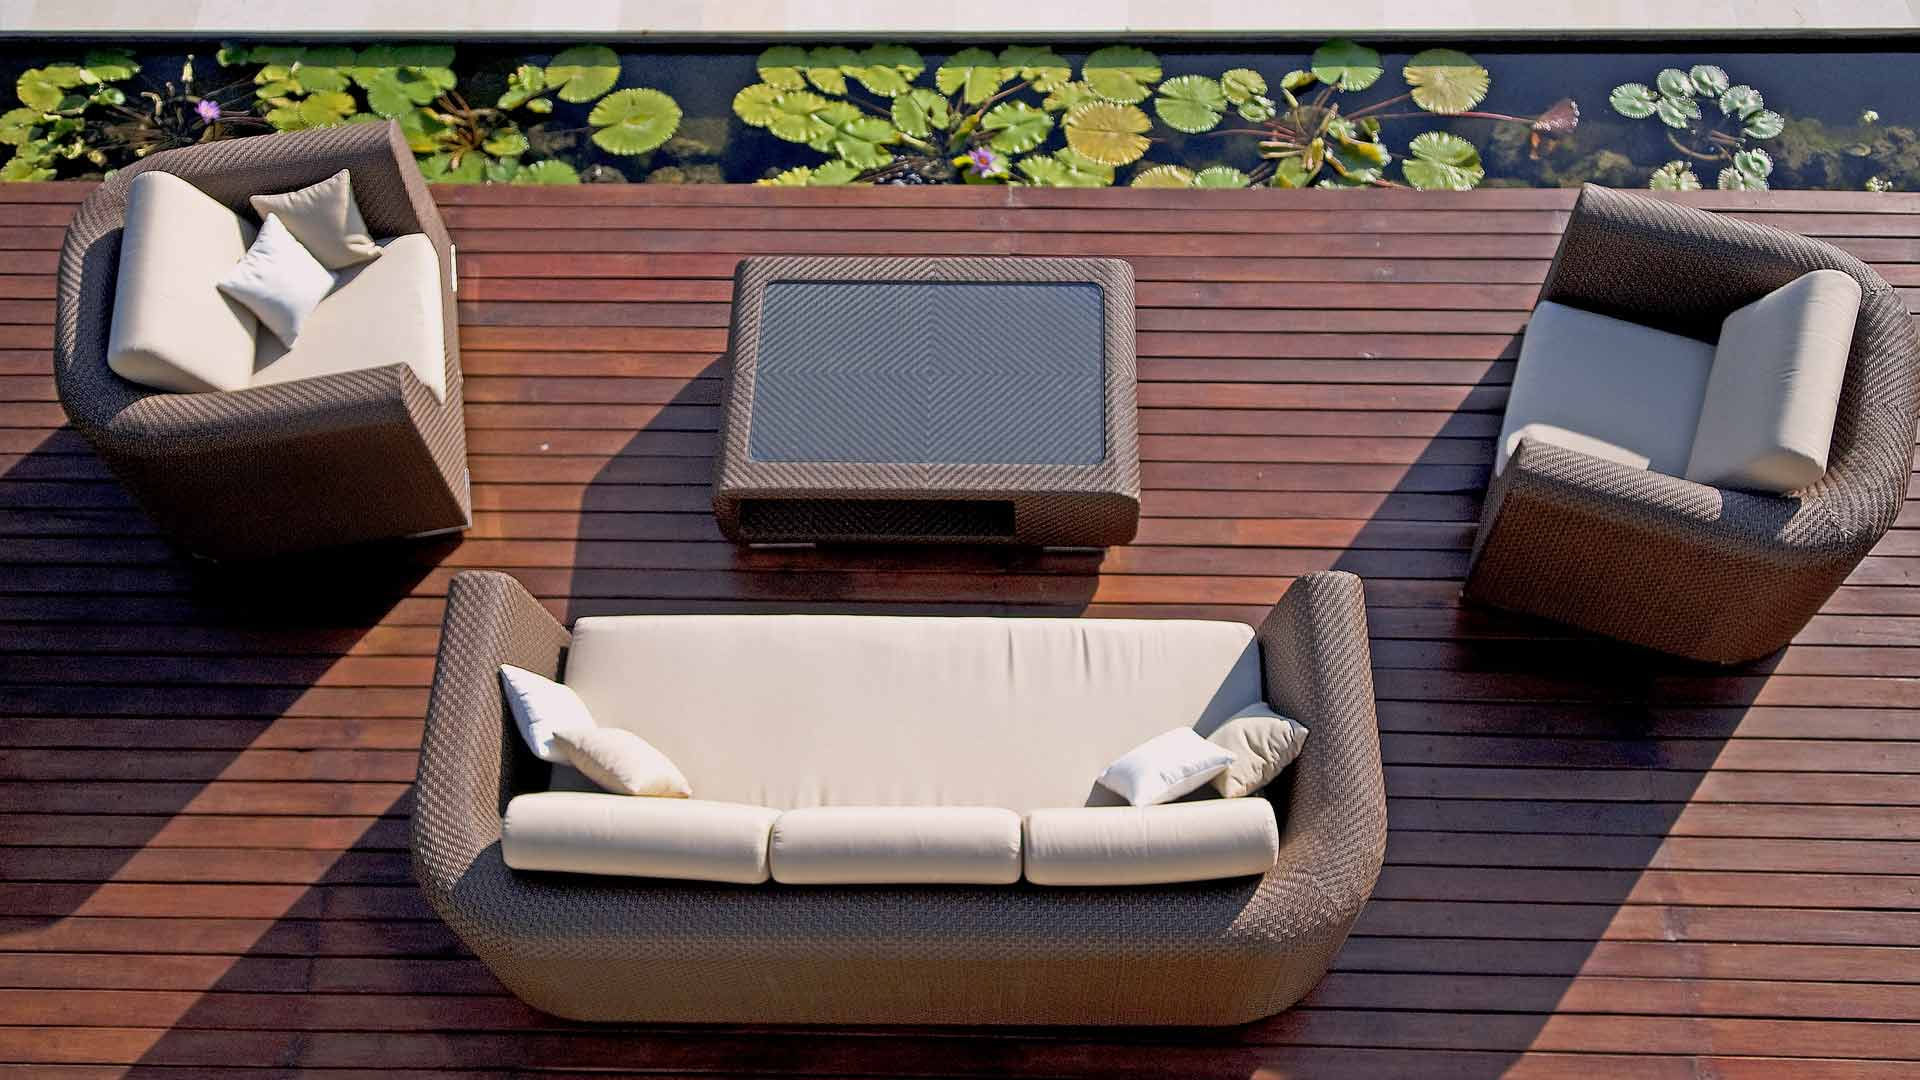 Full Size of Outdoor Lounge Sofa Kollektion Breeze Bloom Mbel Wohnzimmer Couch Terrasse